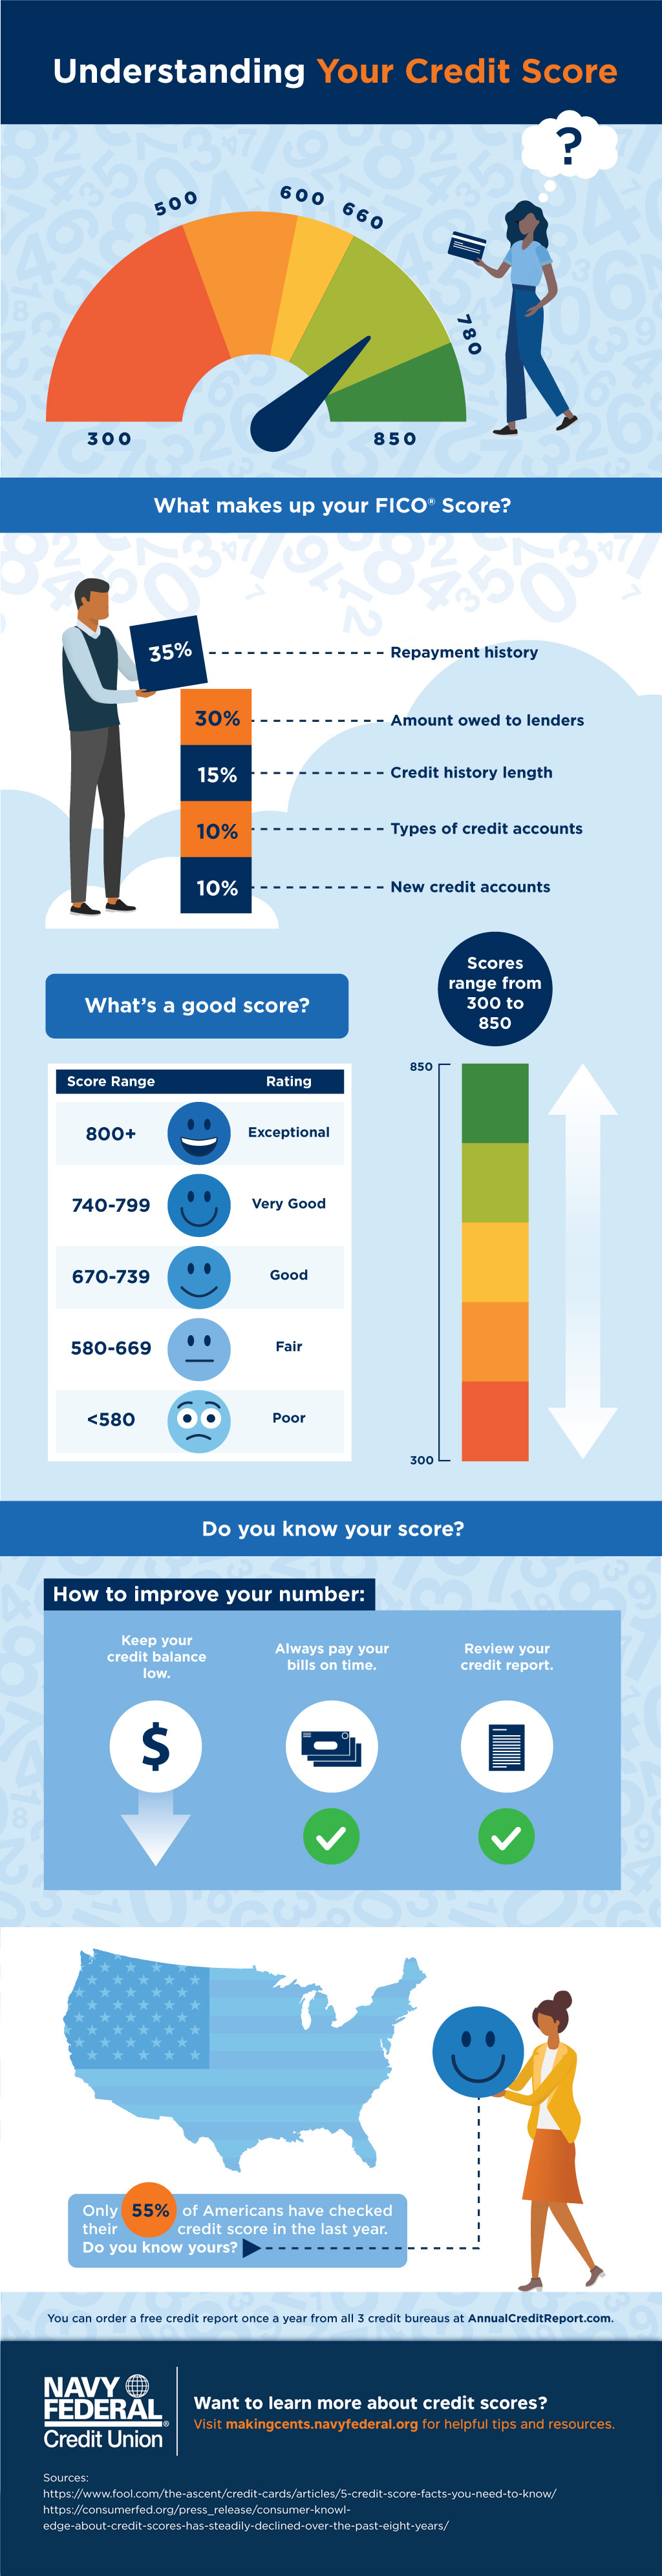 Everything You Need To Know About Credit Scores Makingcents Navy Federal Credit Union